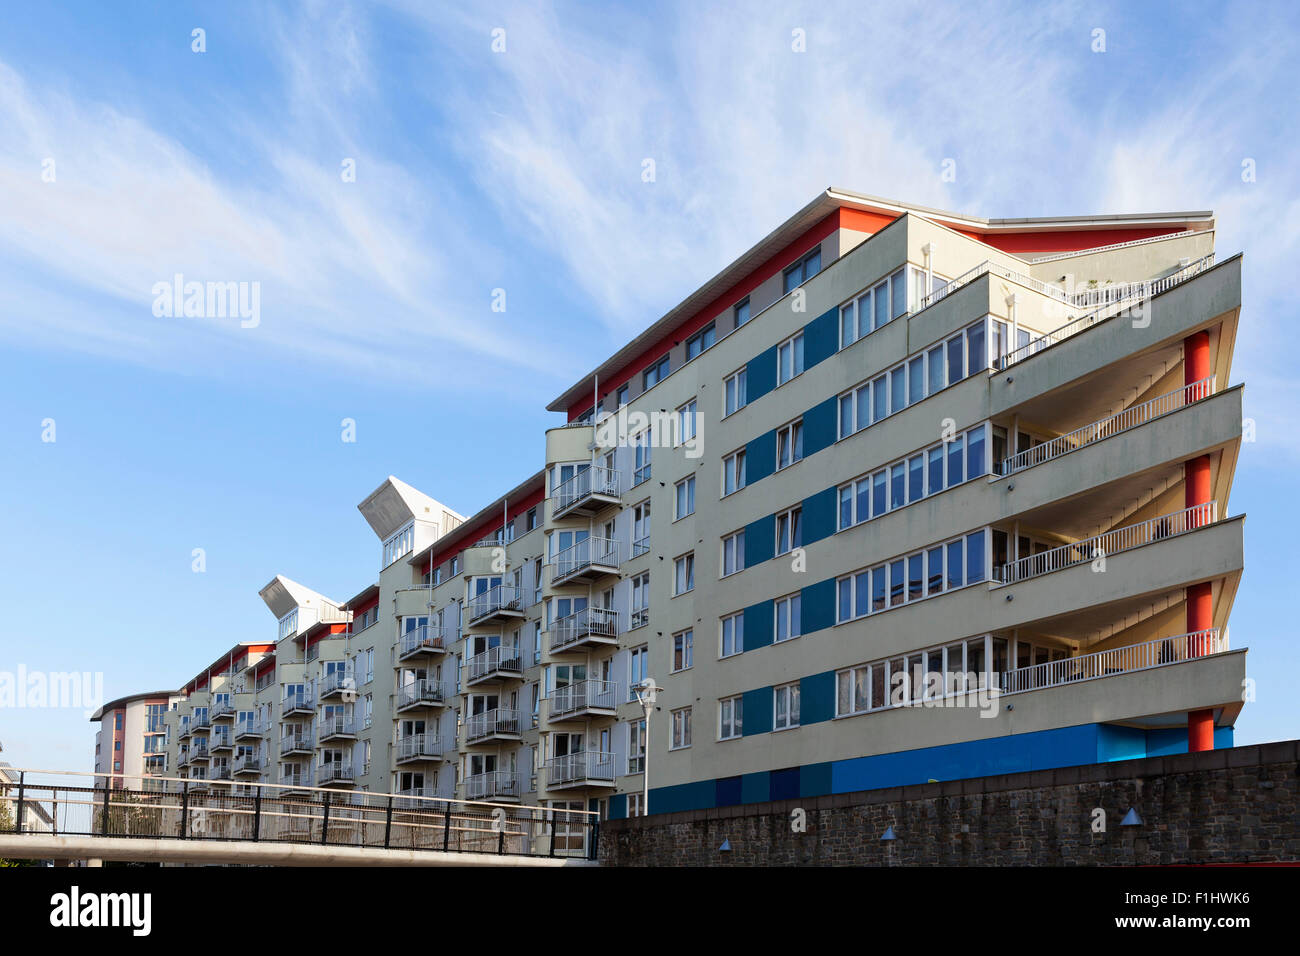 modern apartments in bristol harbour, bristol, looking like a ship